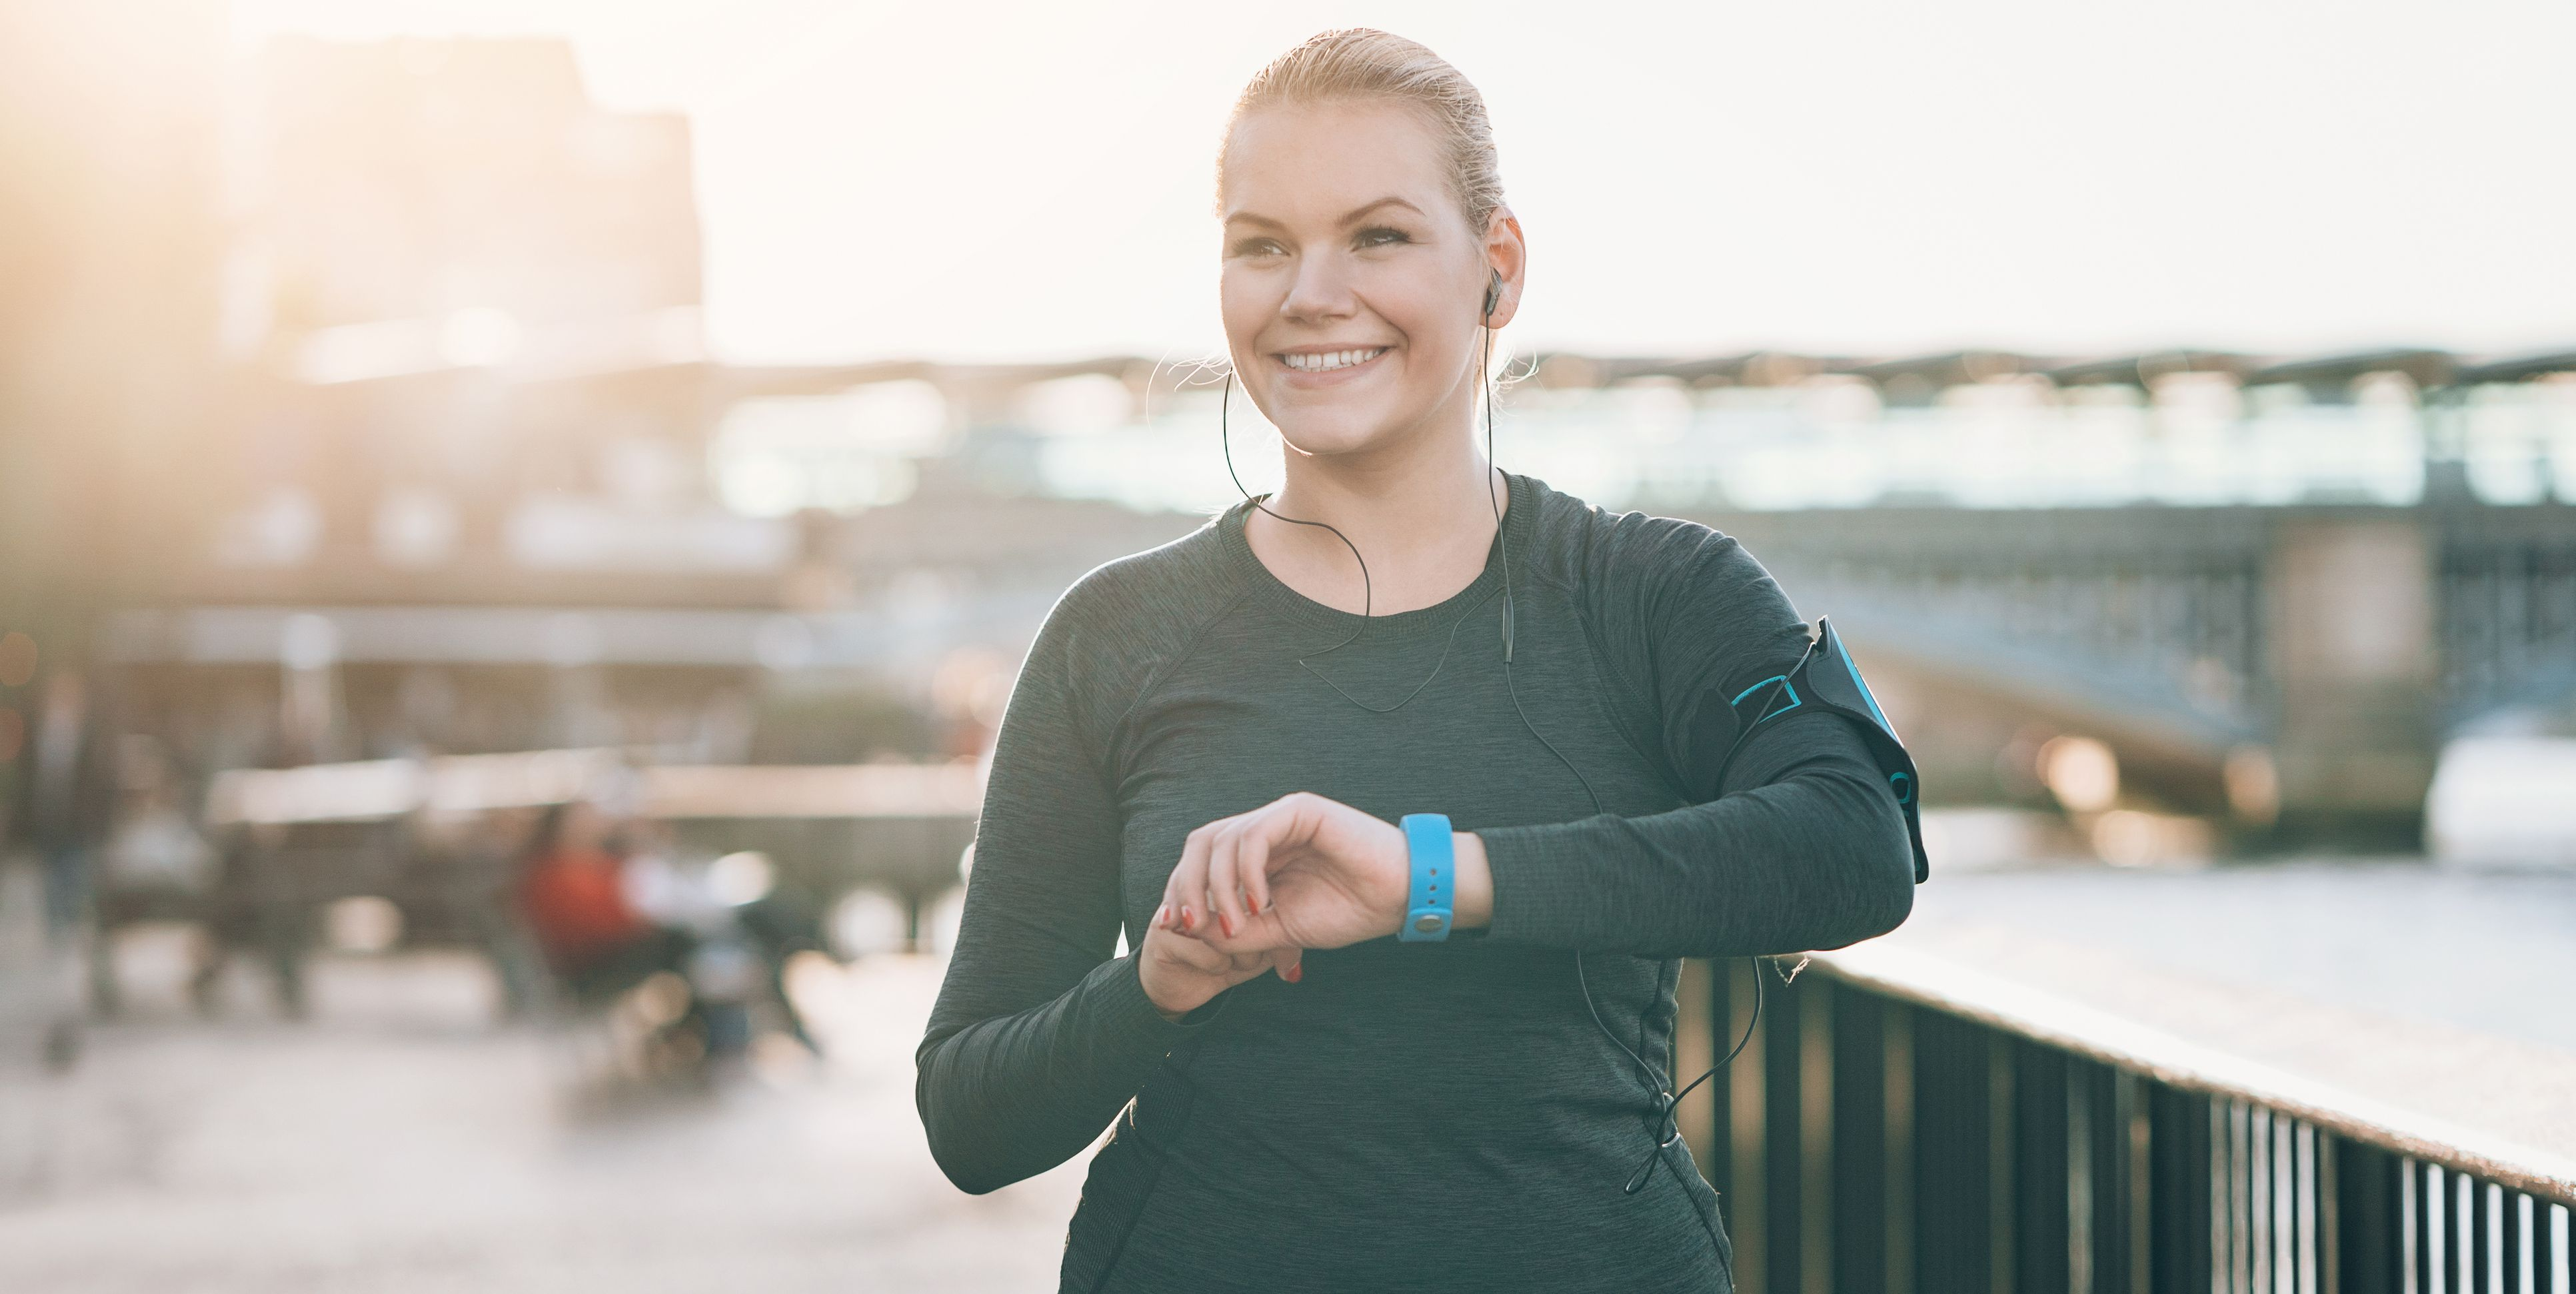 Smiling sportswoman checking her smart watch